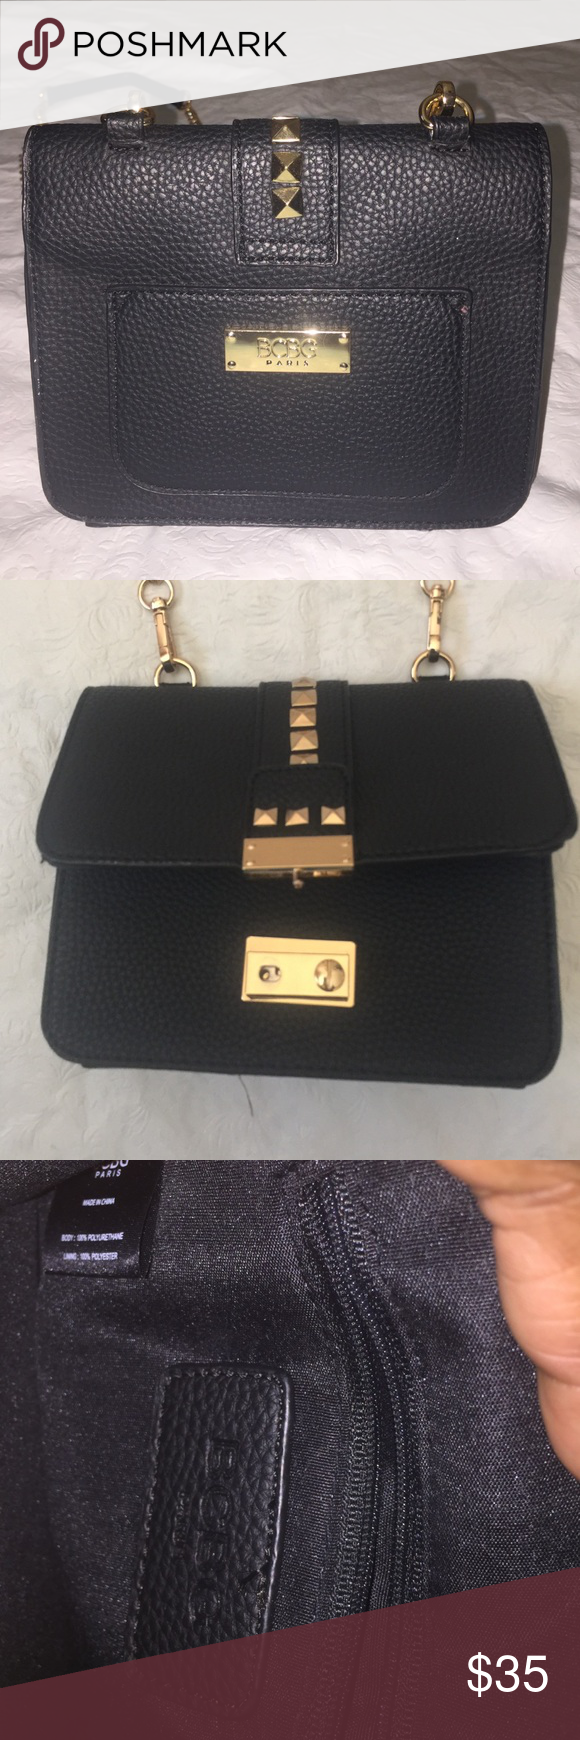 BCBG Paris black & Gold Crossbody Bag Sold As is Missing a front Closure button (See Pictures) beautiful Bag otherwise! BCBG Bags Crossbody Bags